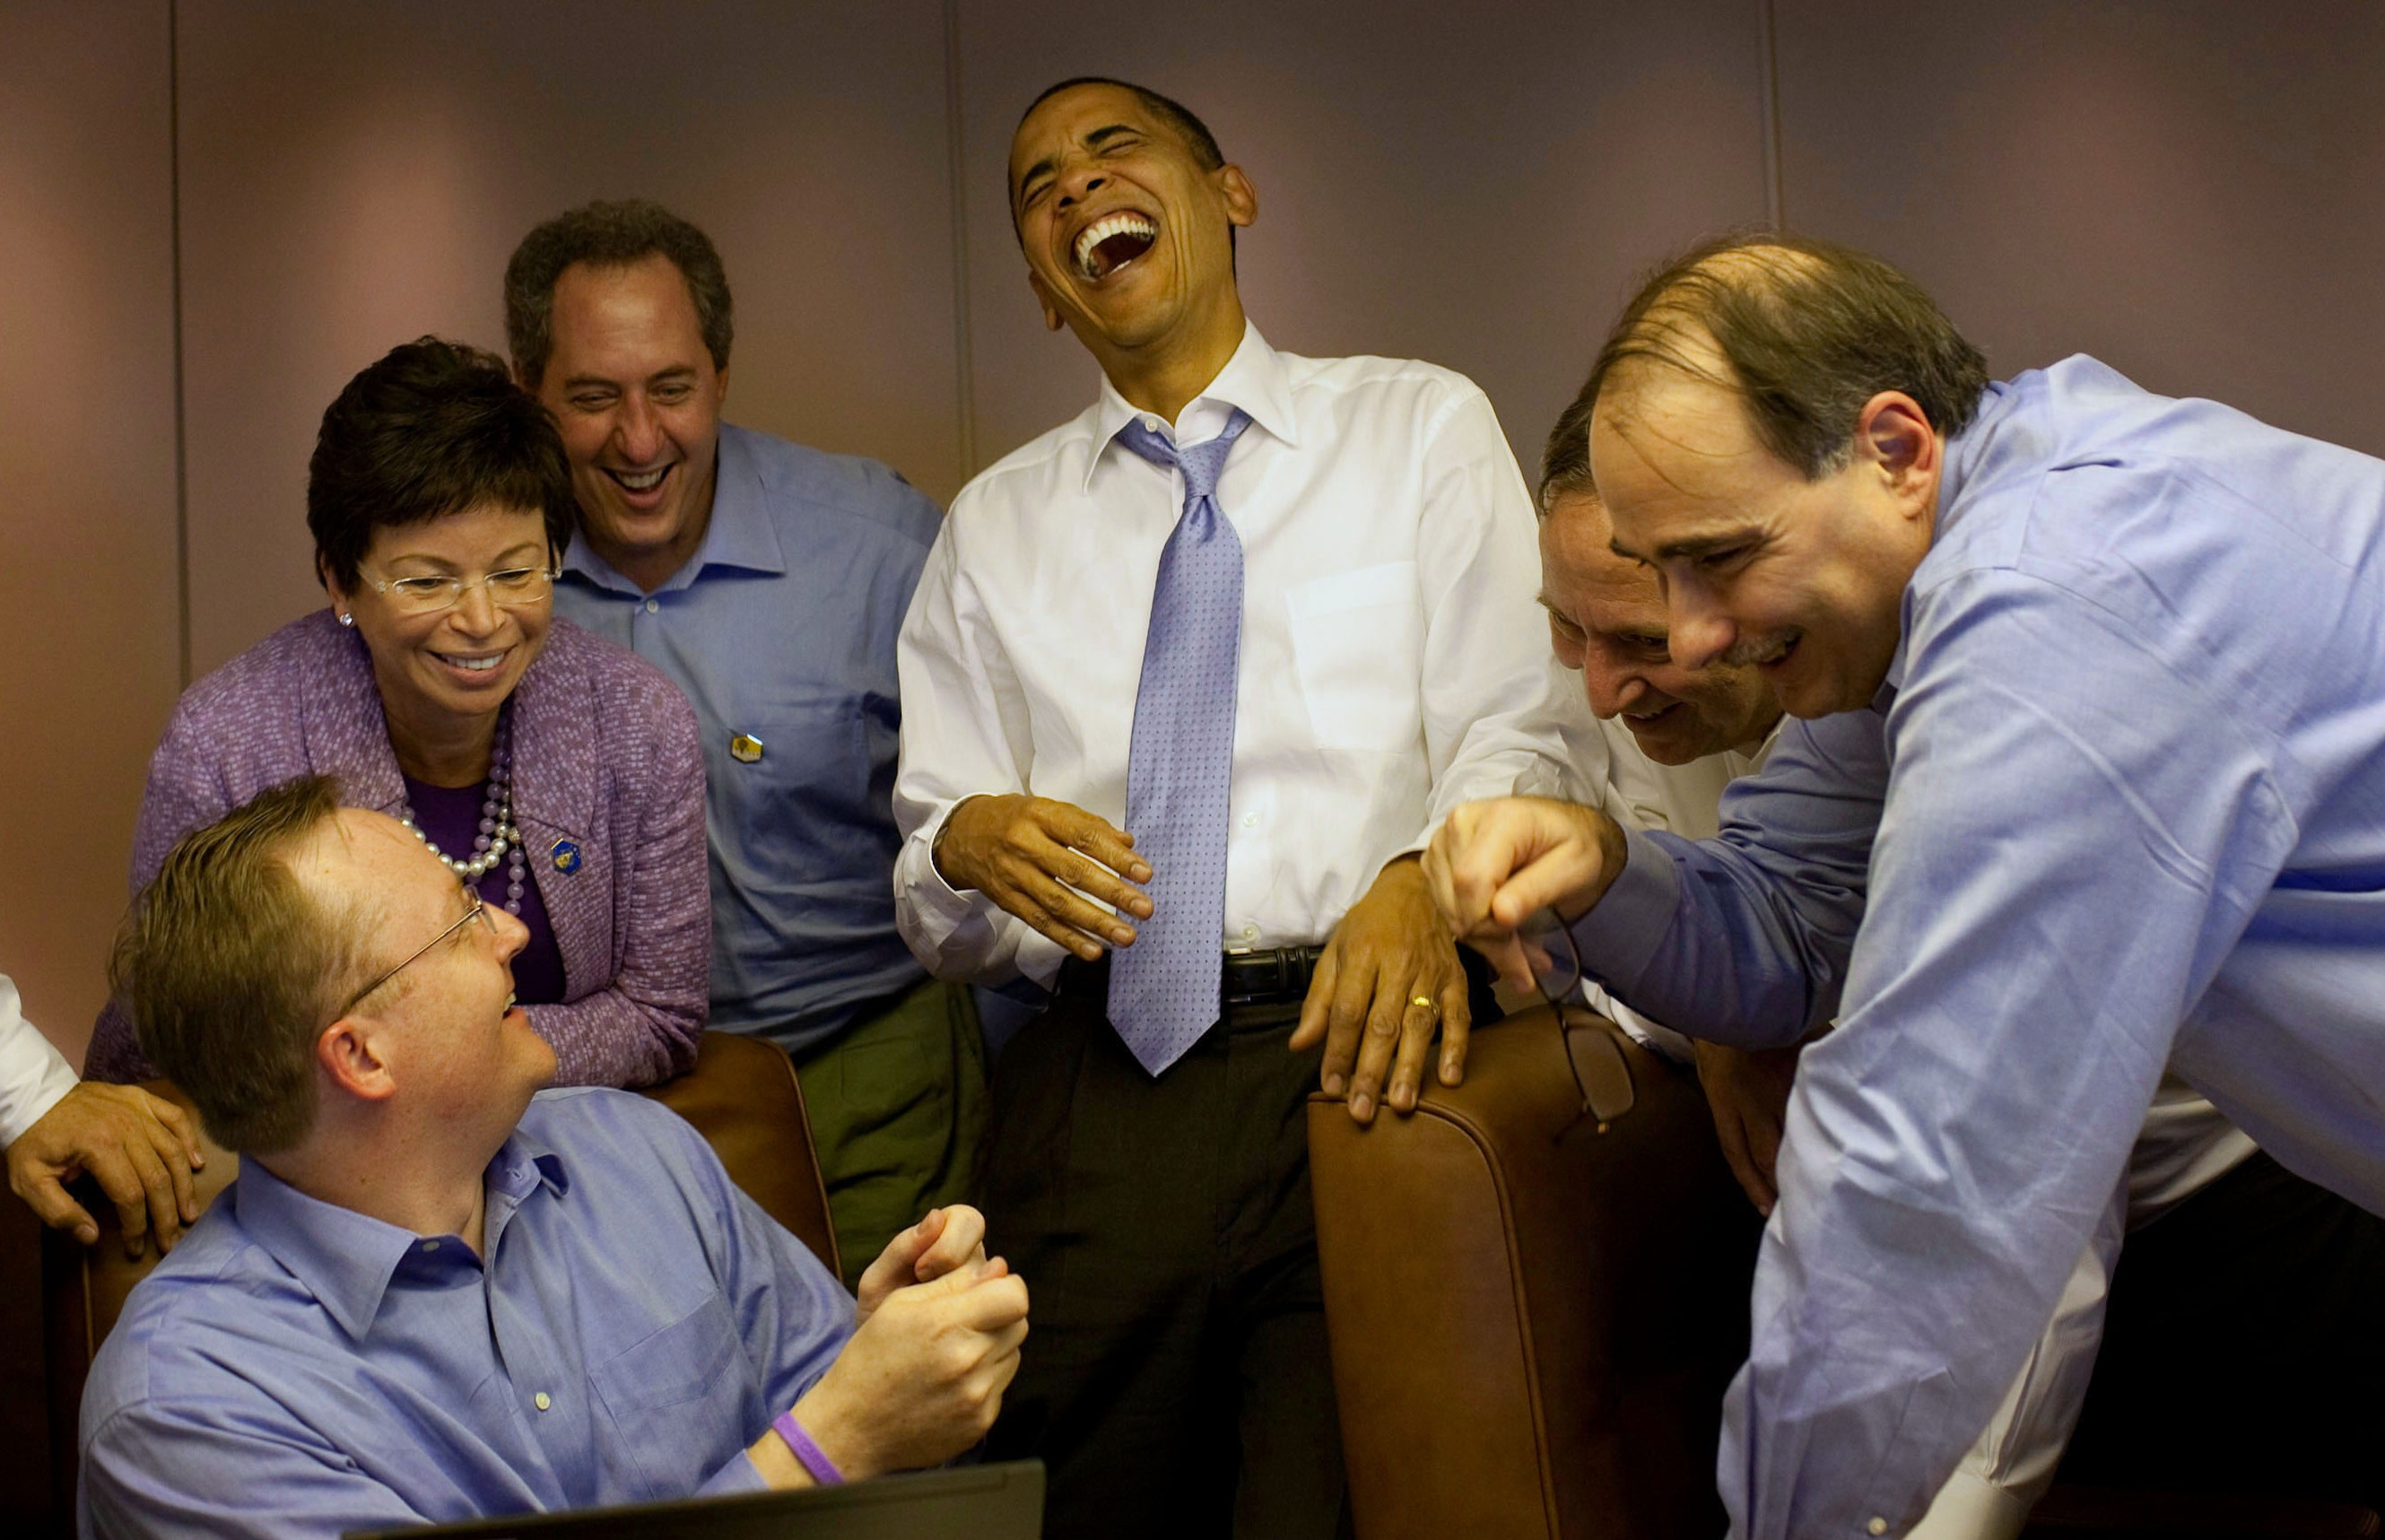 President Barack Obama laughs with aides aboard Air Force One en route to Singapore, Nov. 14, 2009.